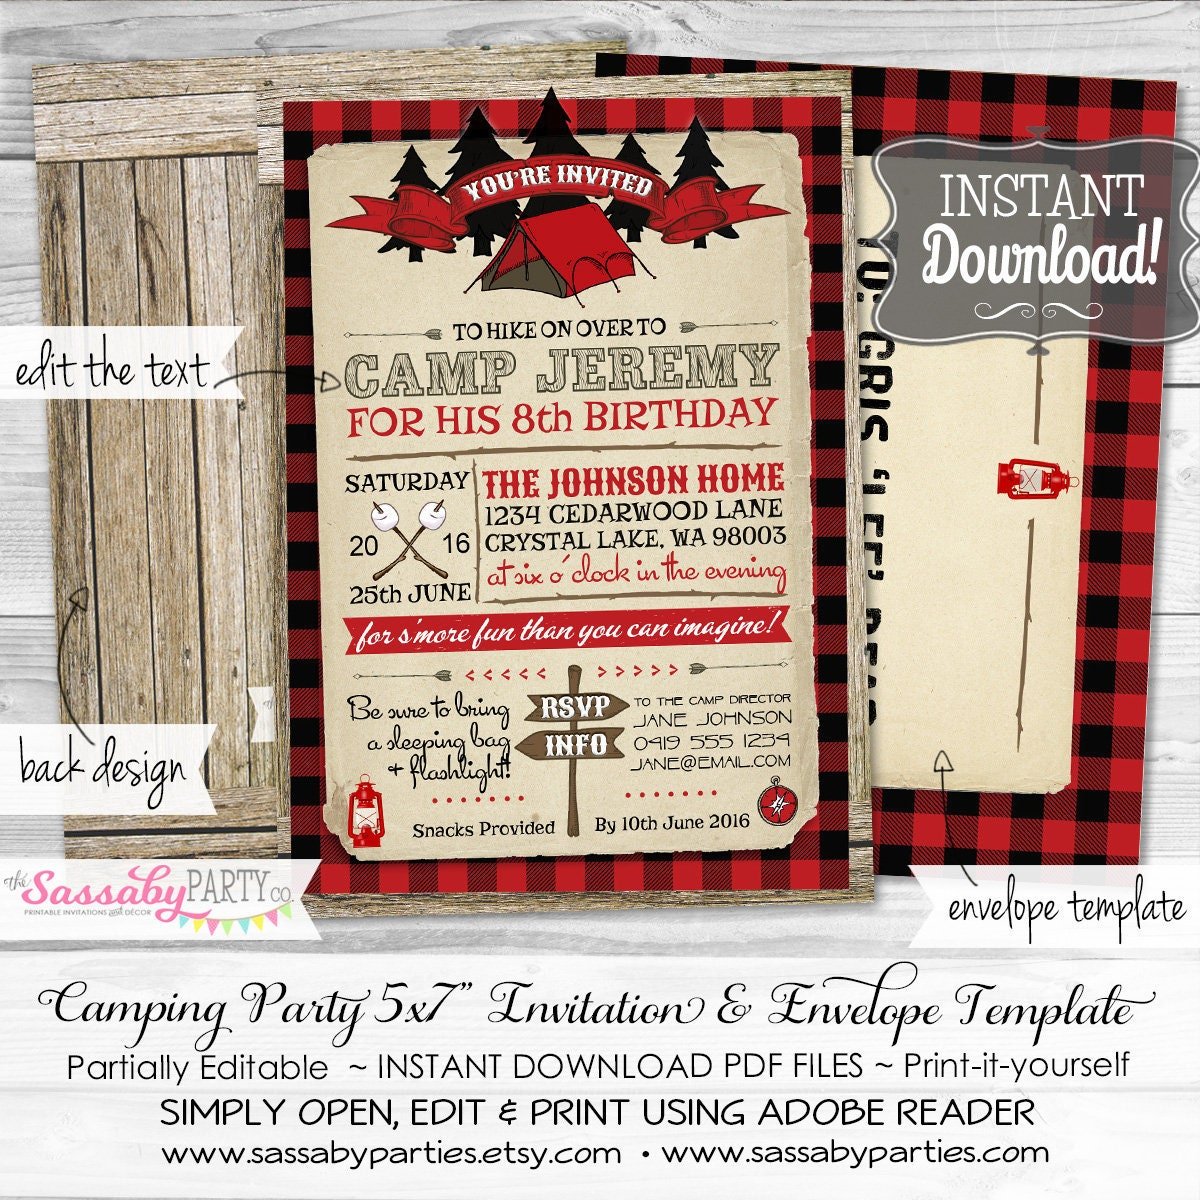 Camping Party Invitation INSTANT DOWNLOAD Partially | Etsy